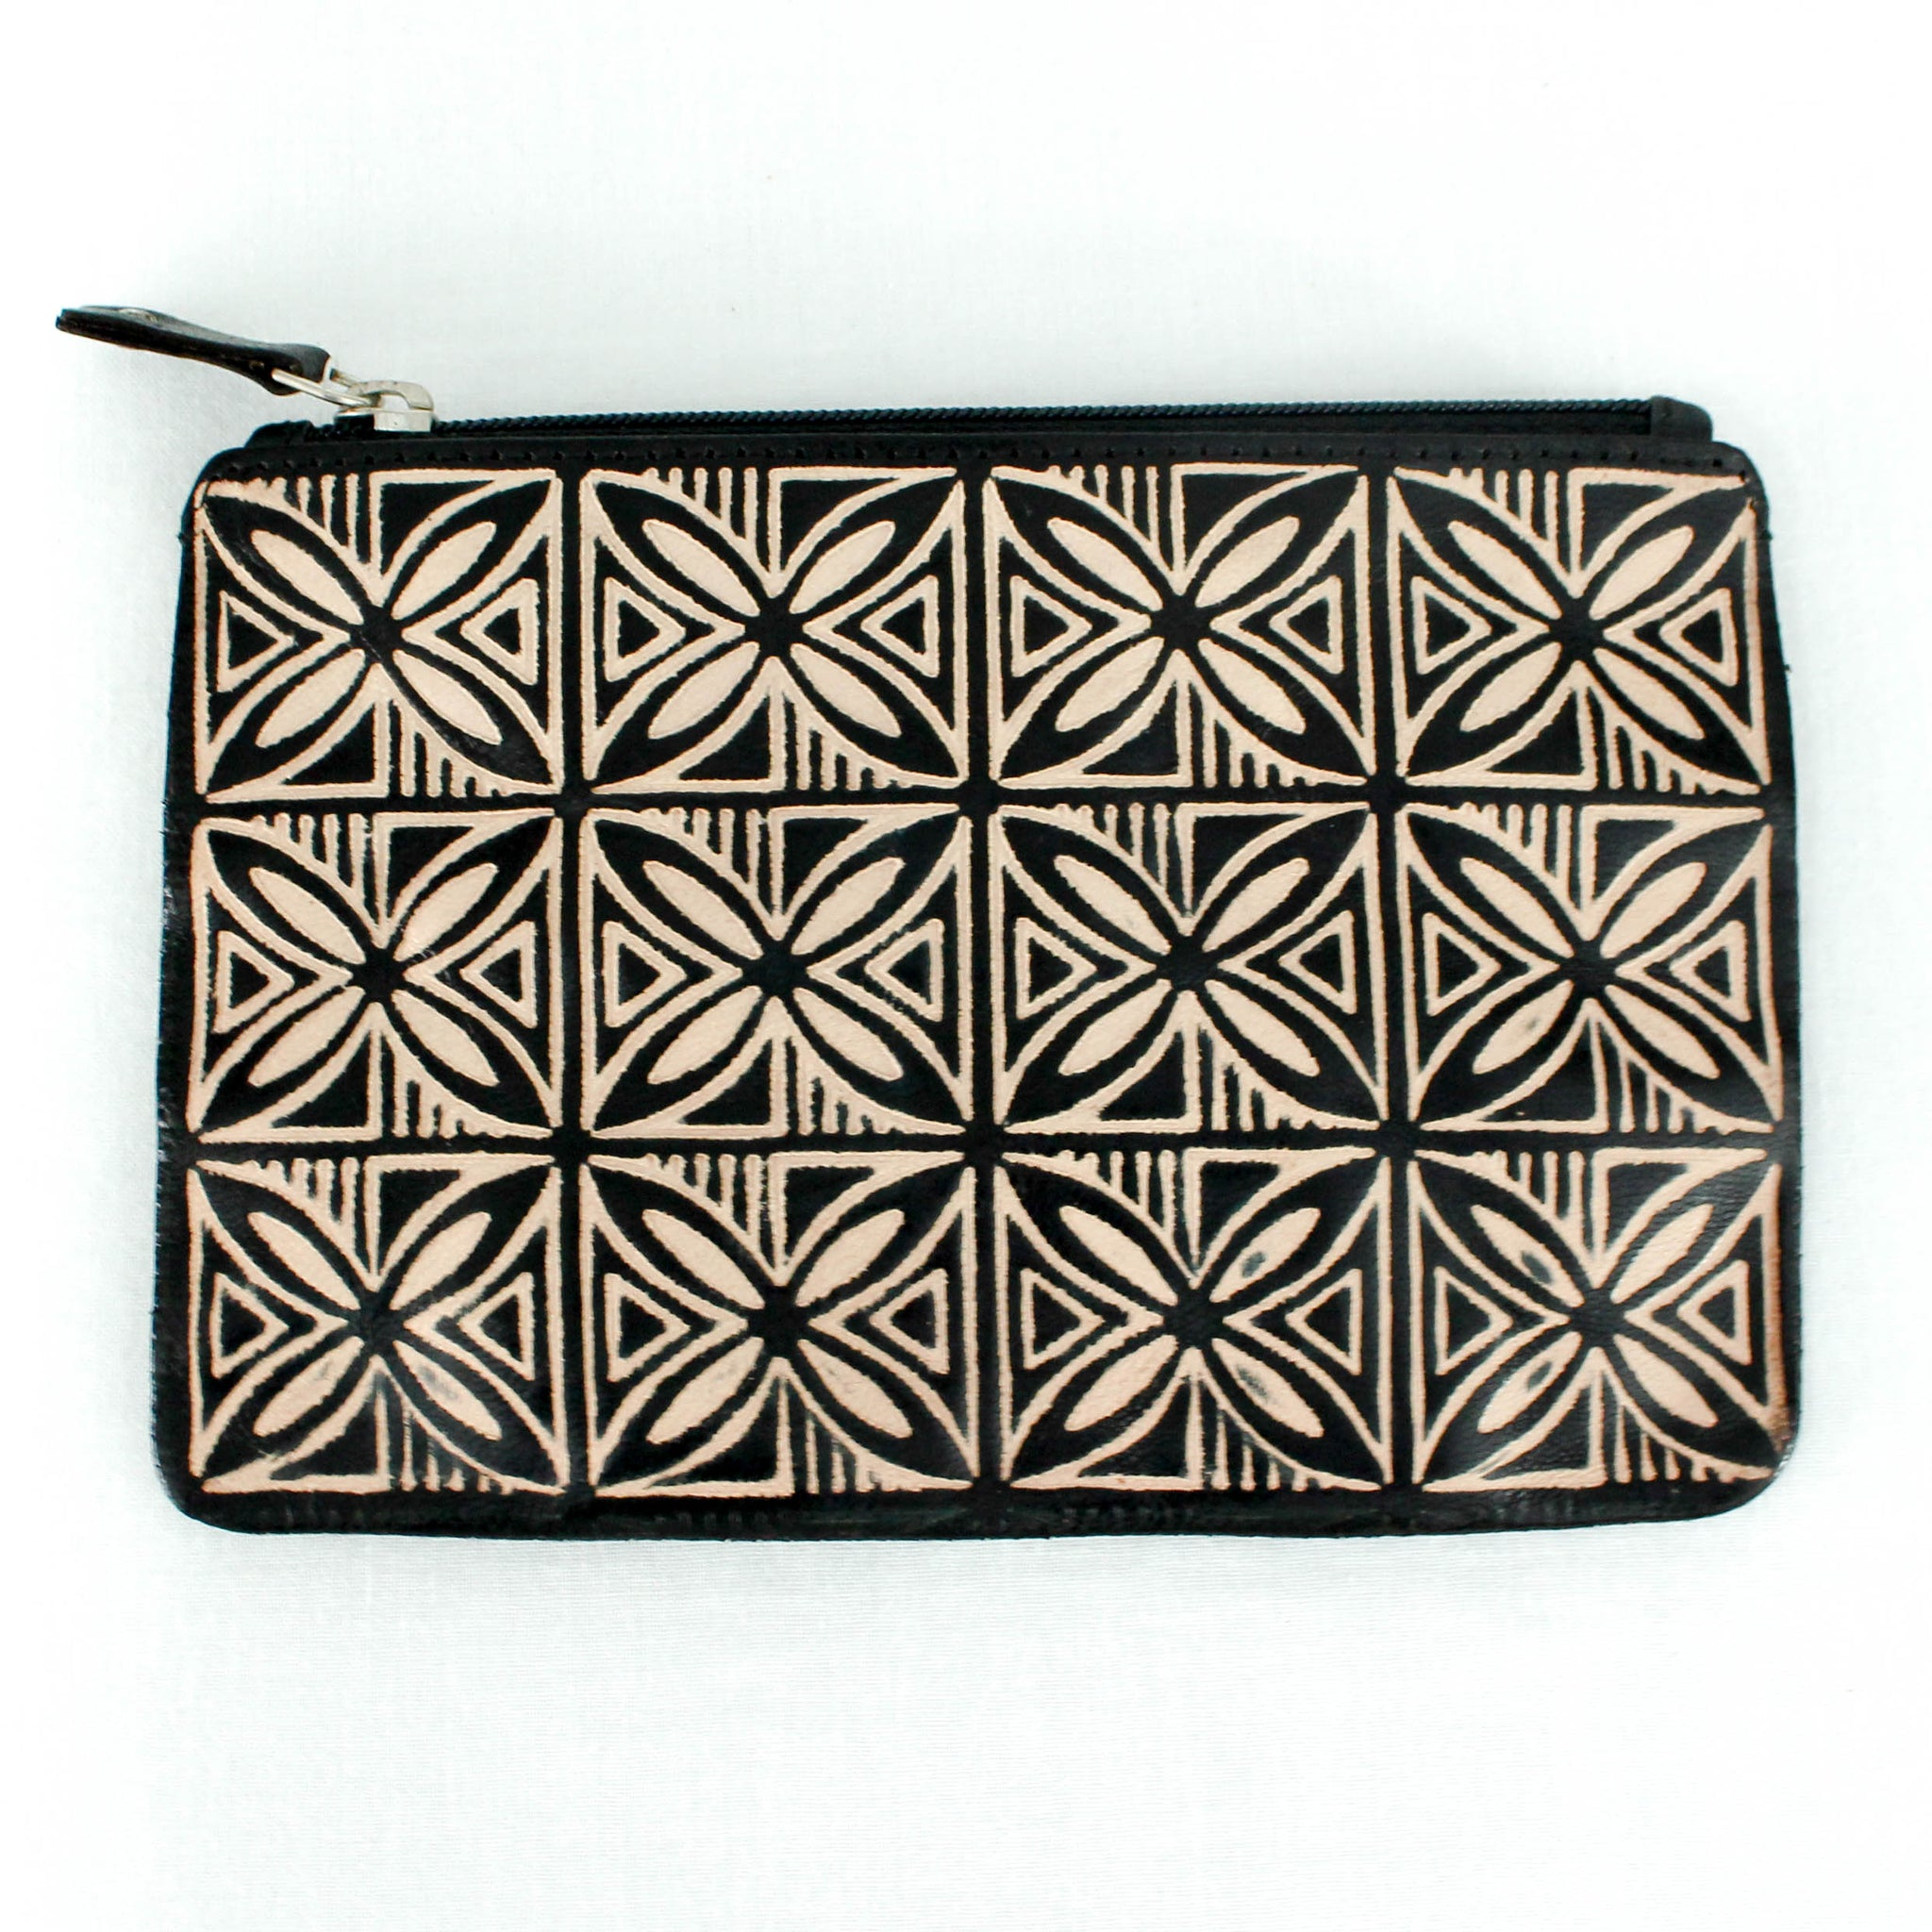 Leather Siapo Coin Purse